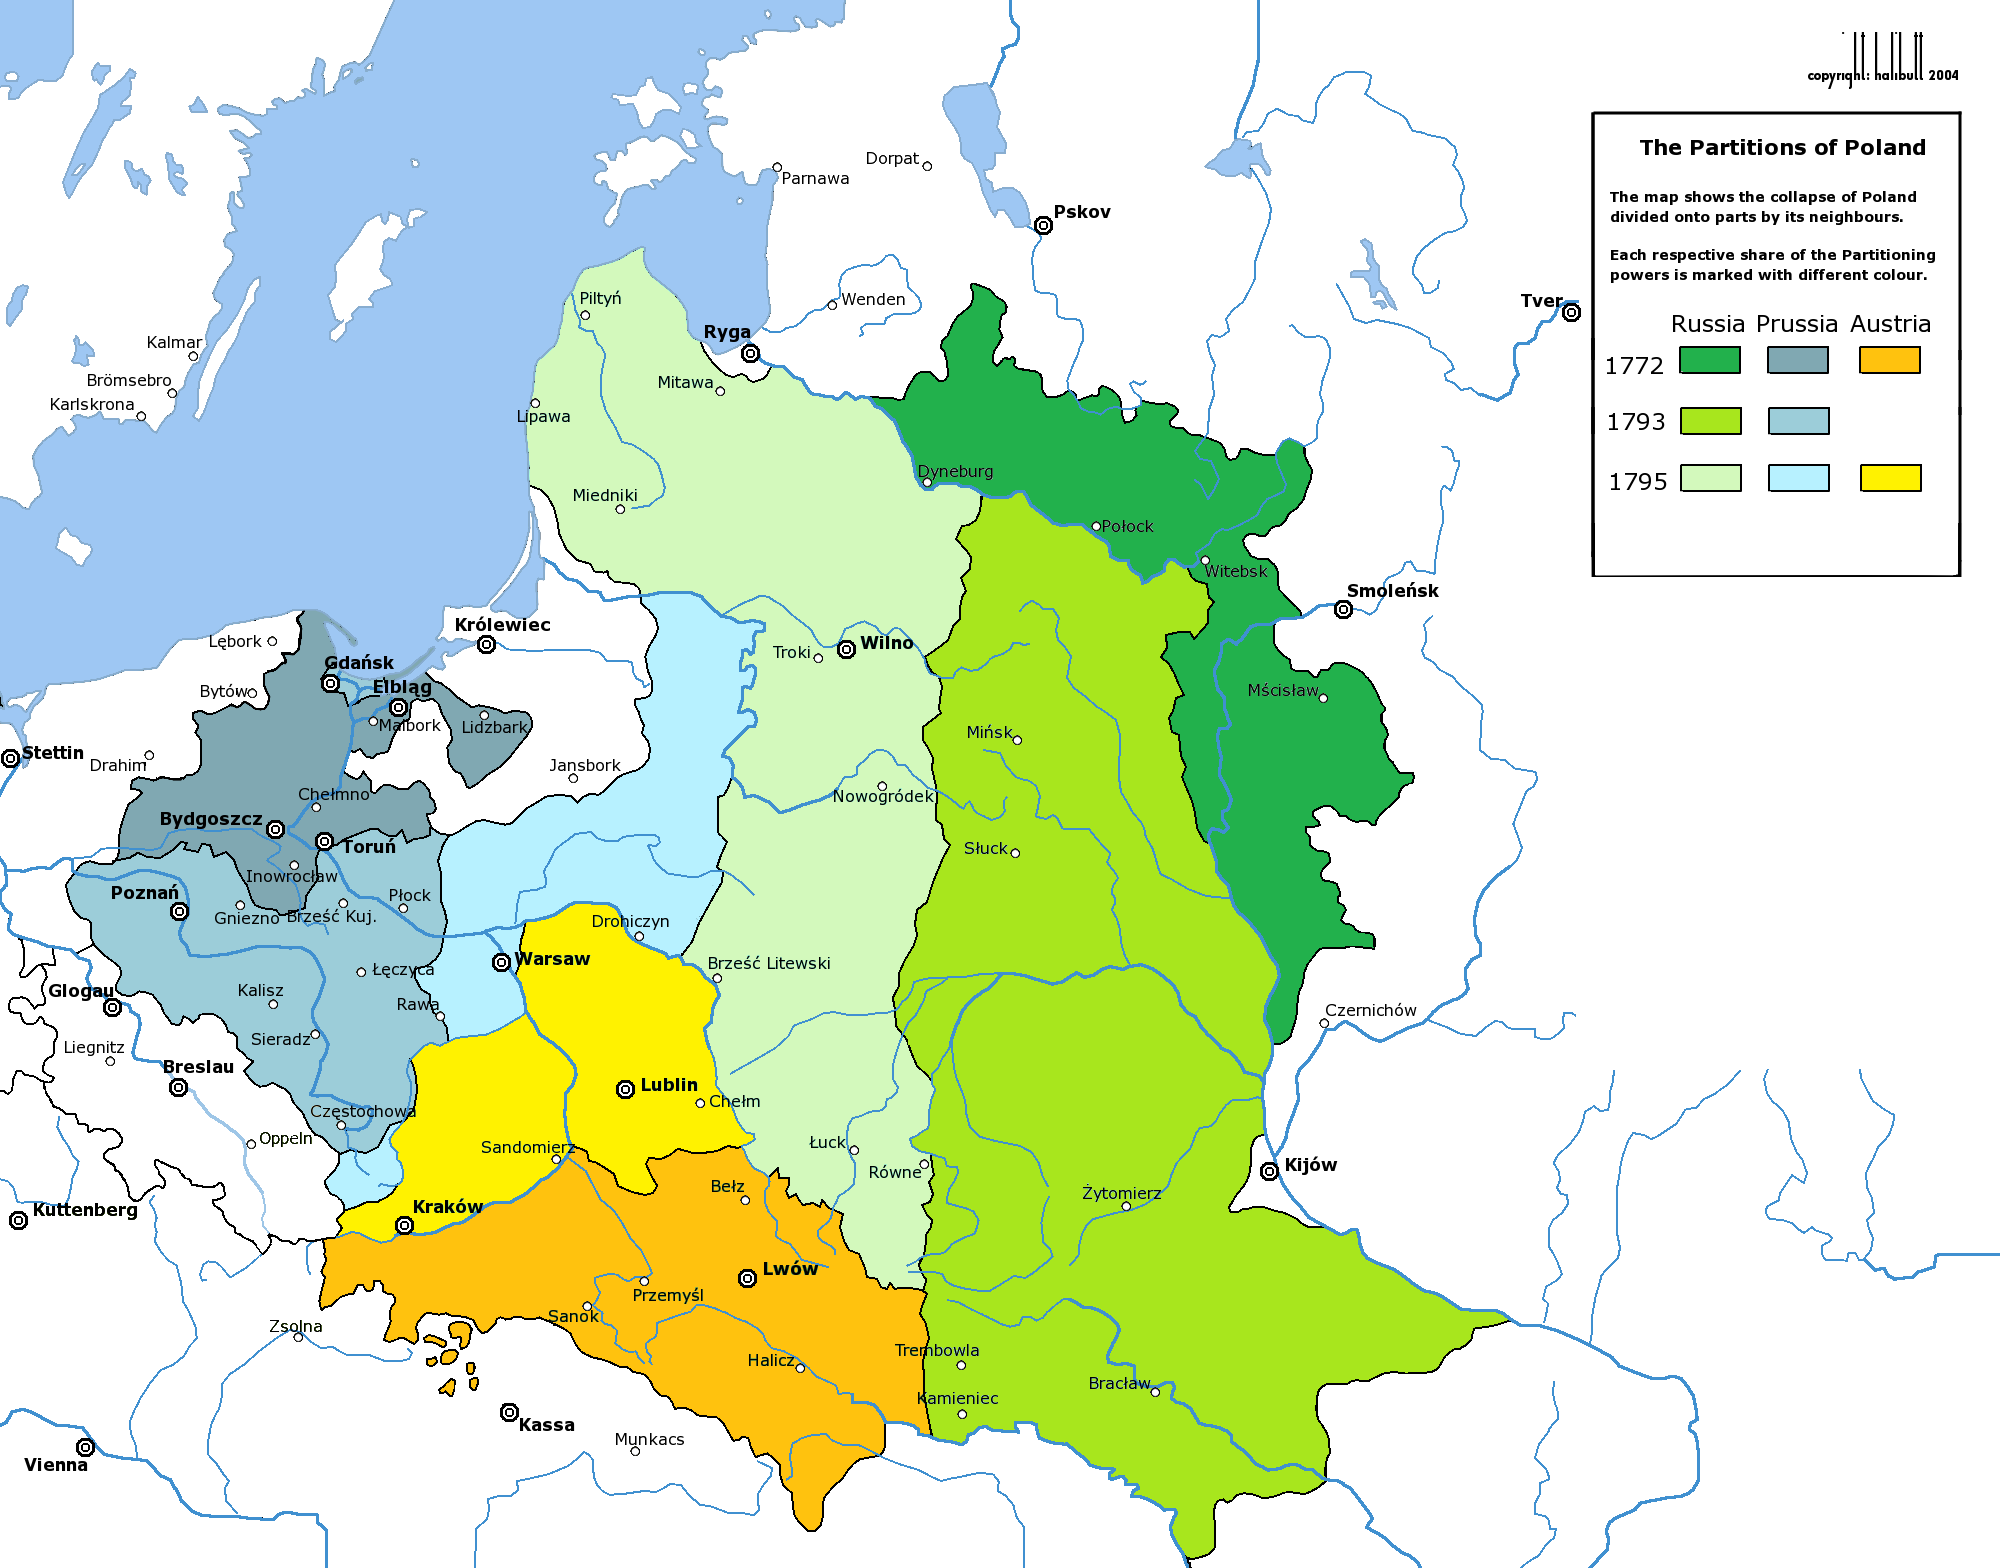 The Partitions of Poland